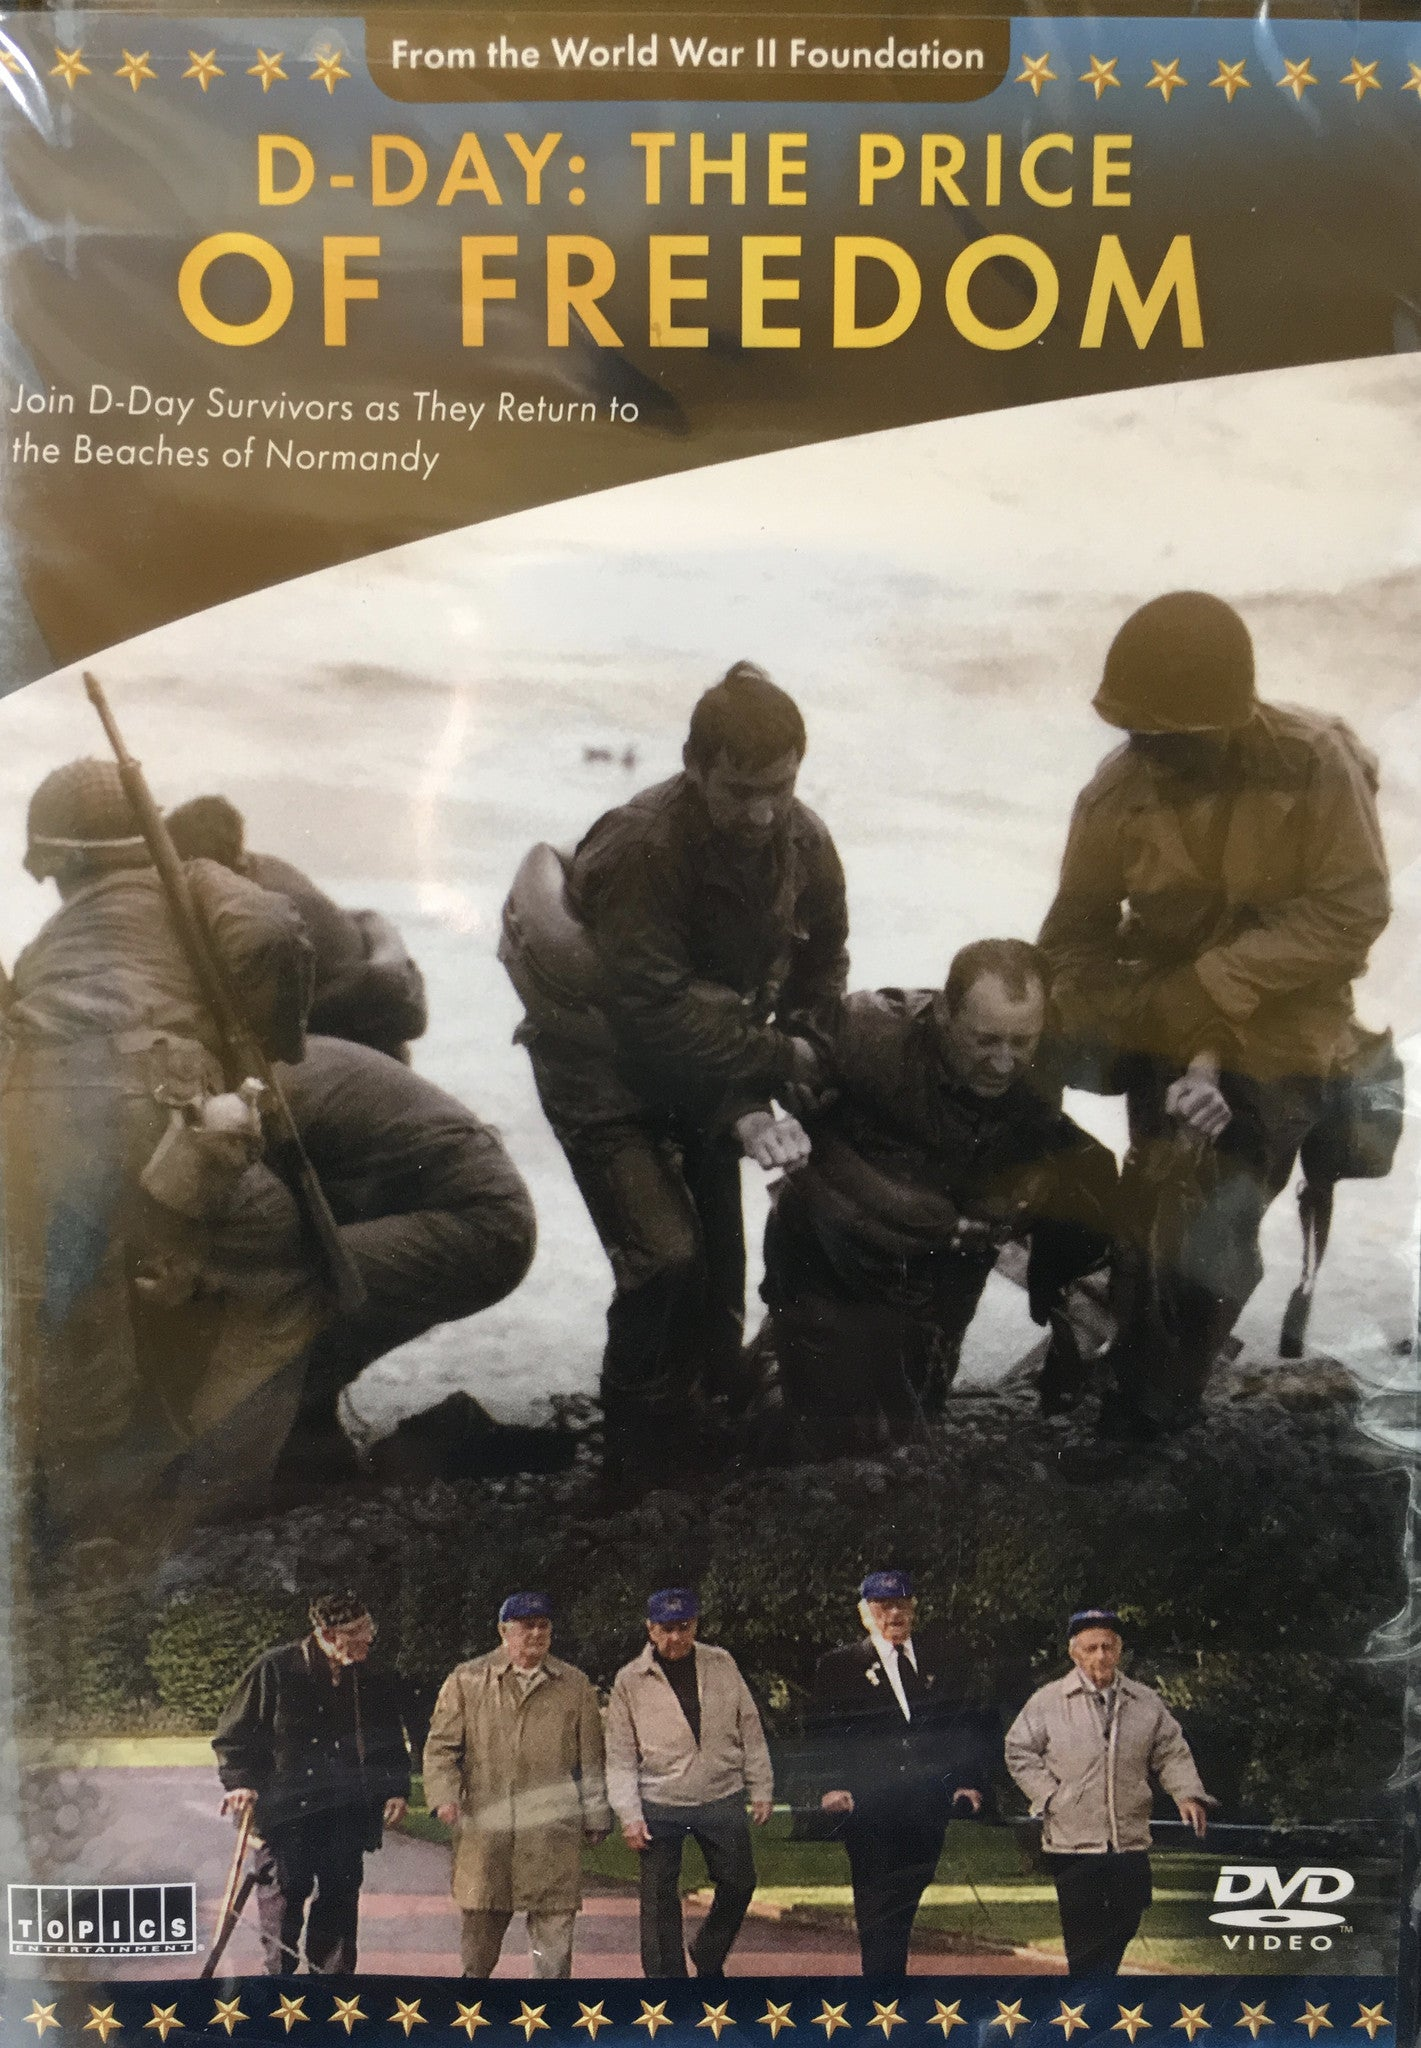 D-DAY, The Price of Freedom DVD